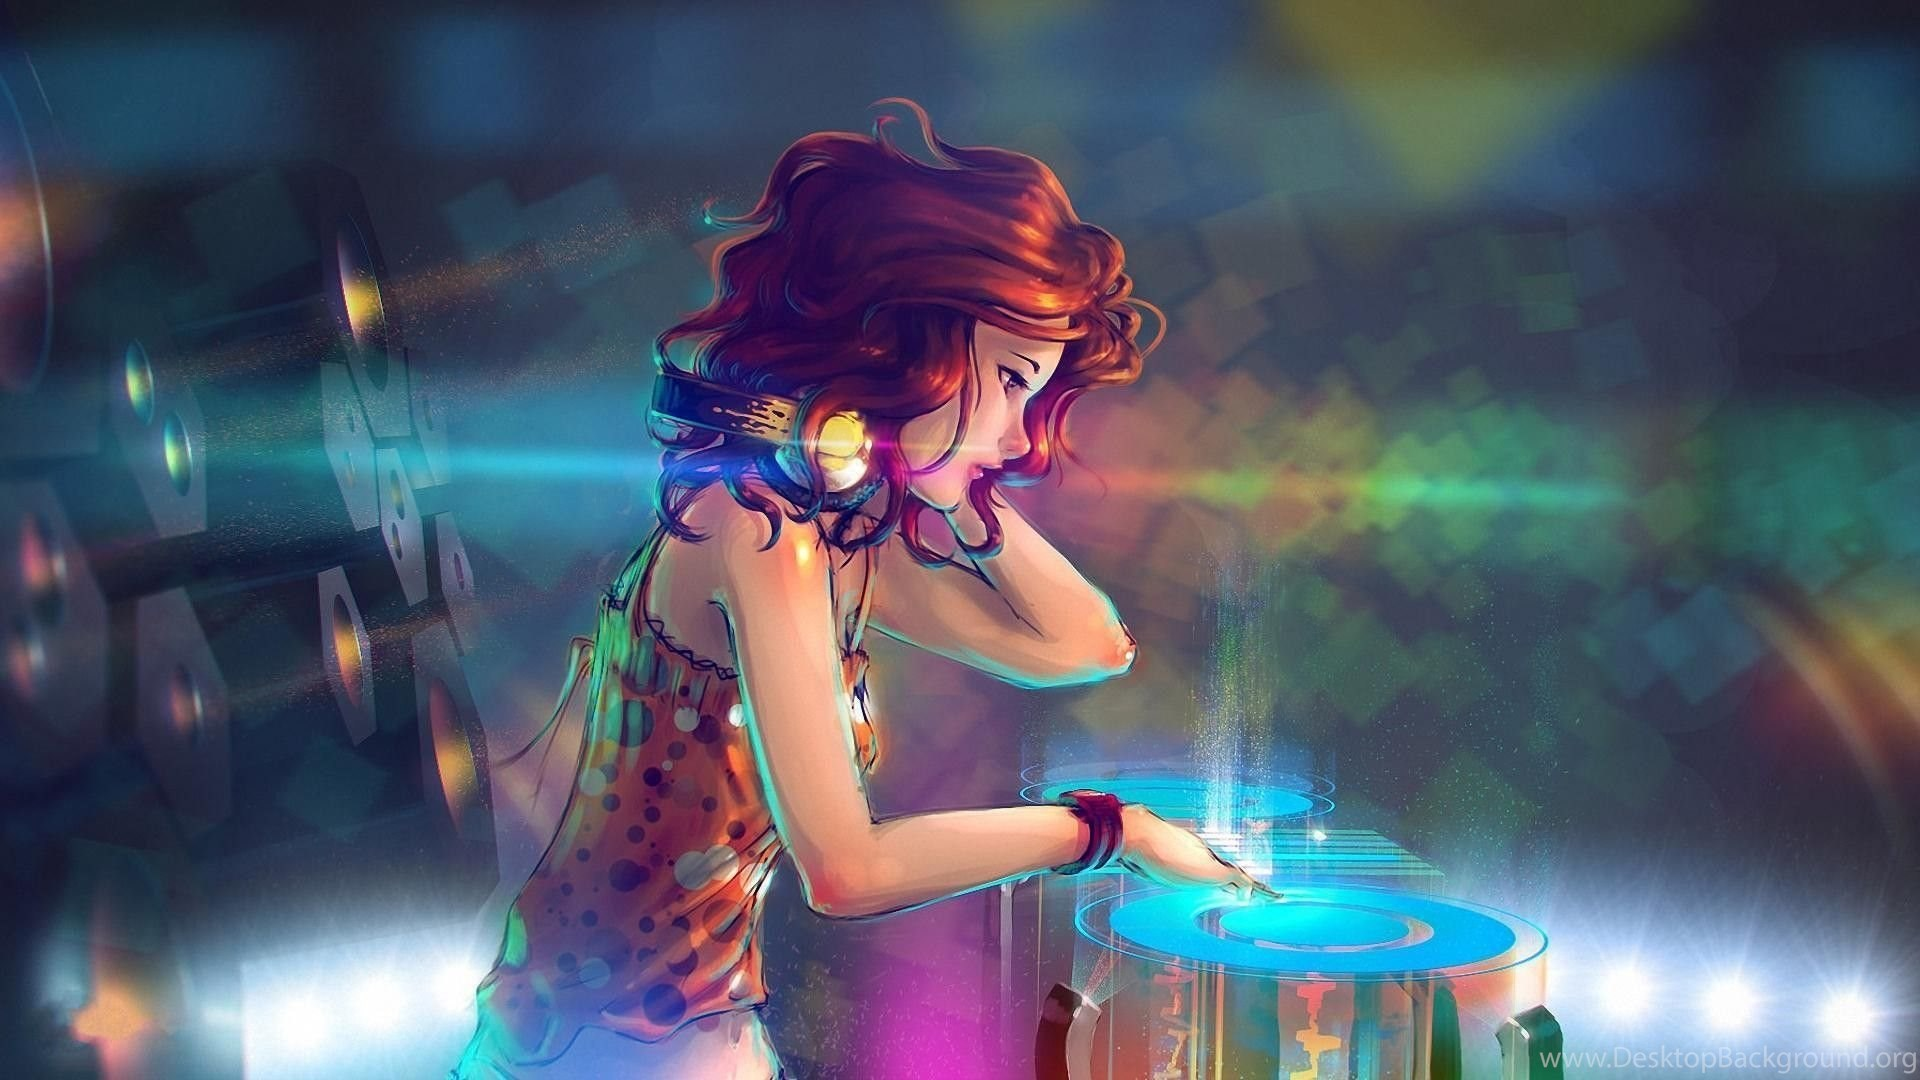 Animated Wallpapers For Desktop Anime Girl DJ Animated Girl jpg